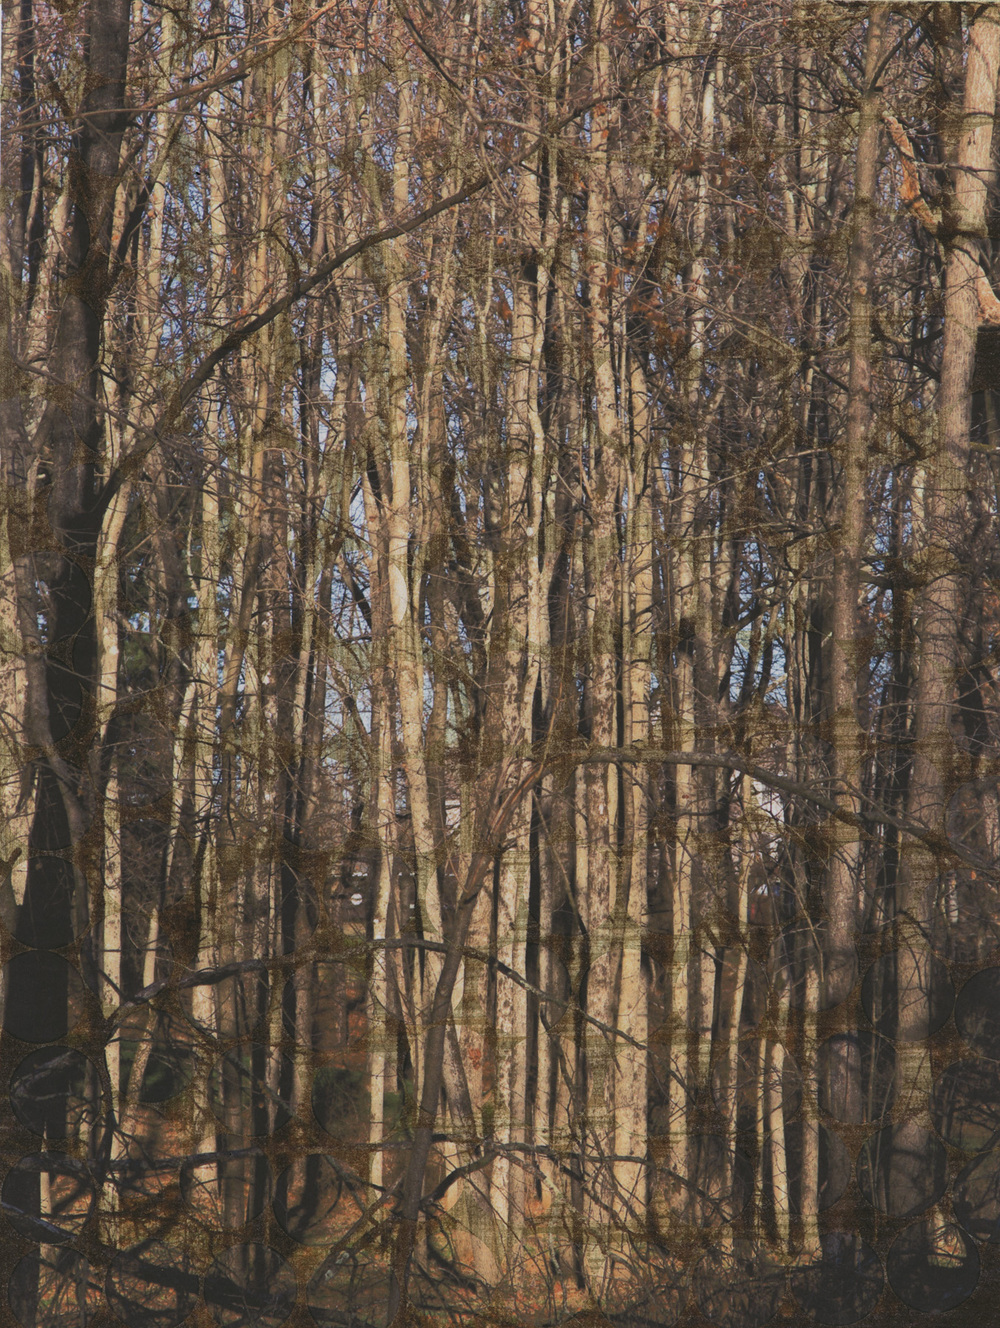 Lucy Meskill Forest Photograph on altered paper surface